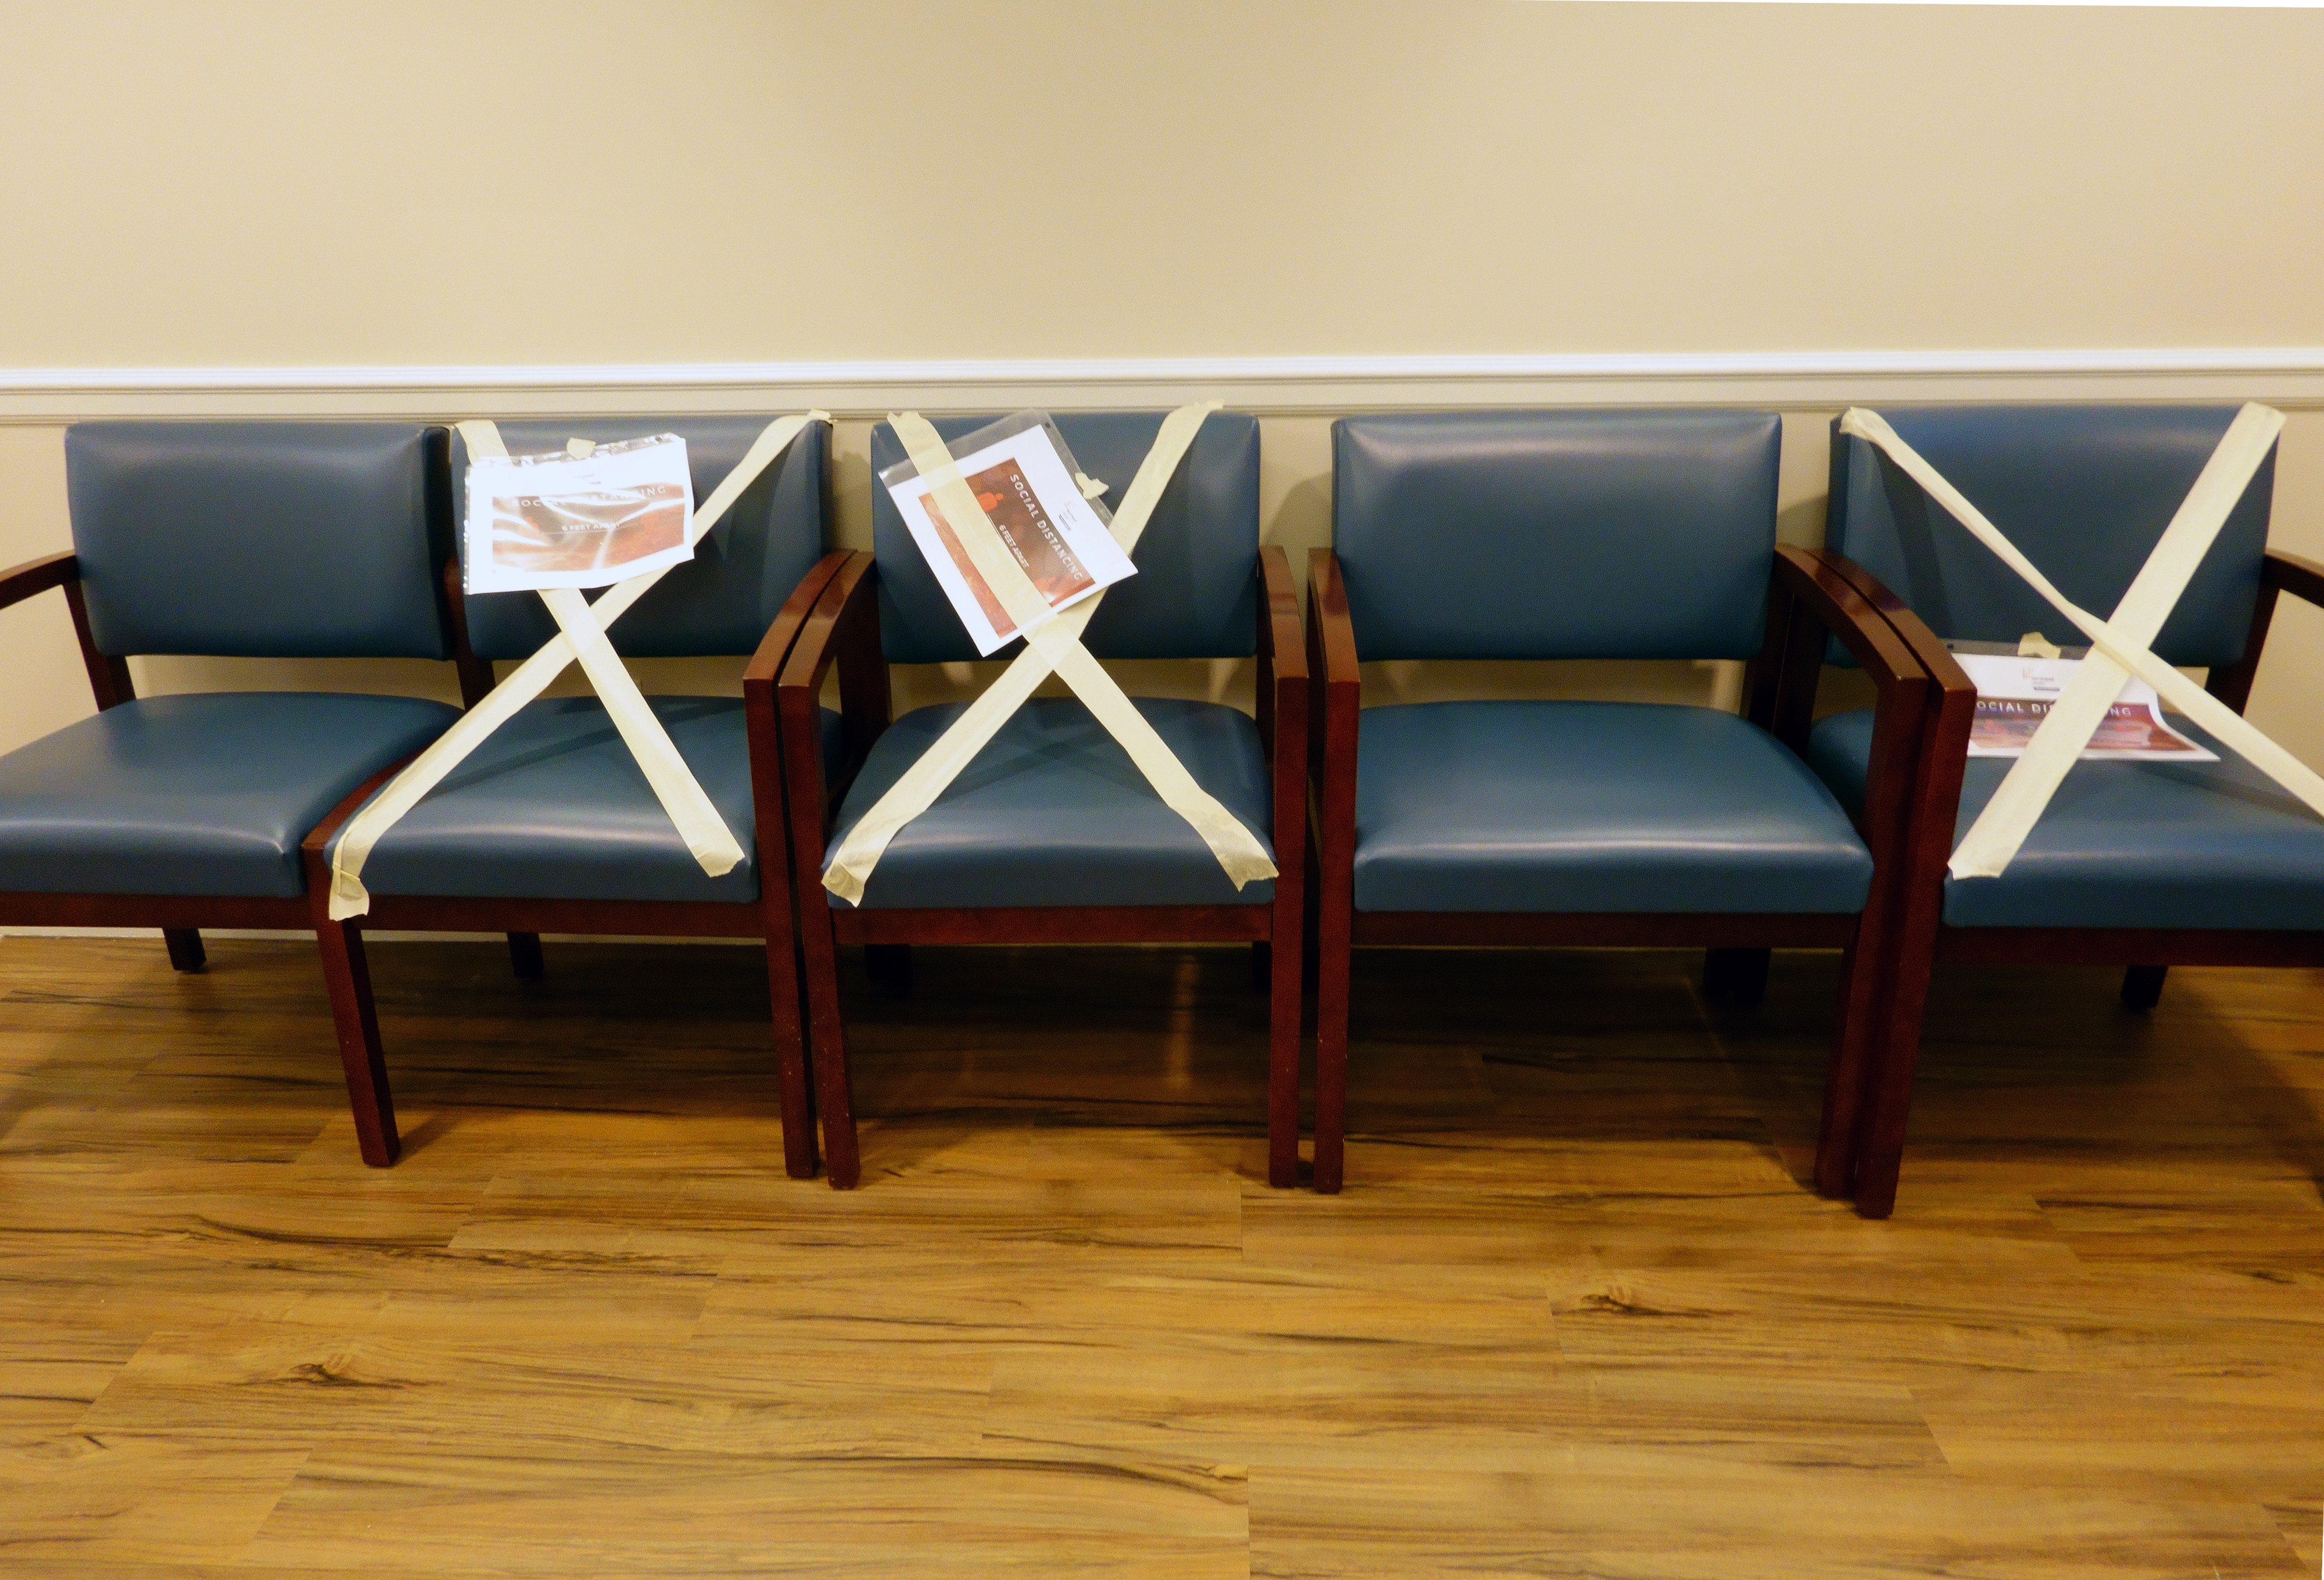 Chairs taped off in a waiting area.